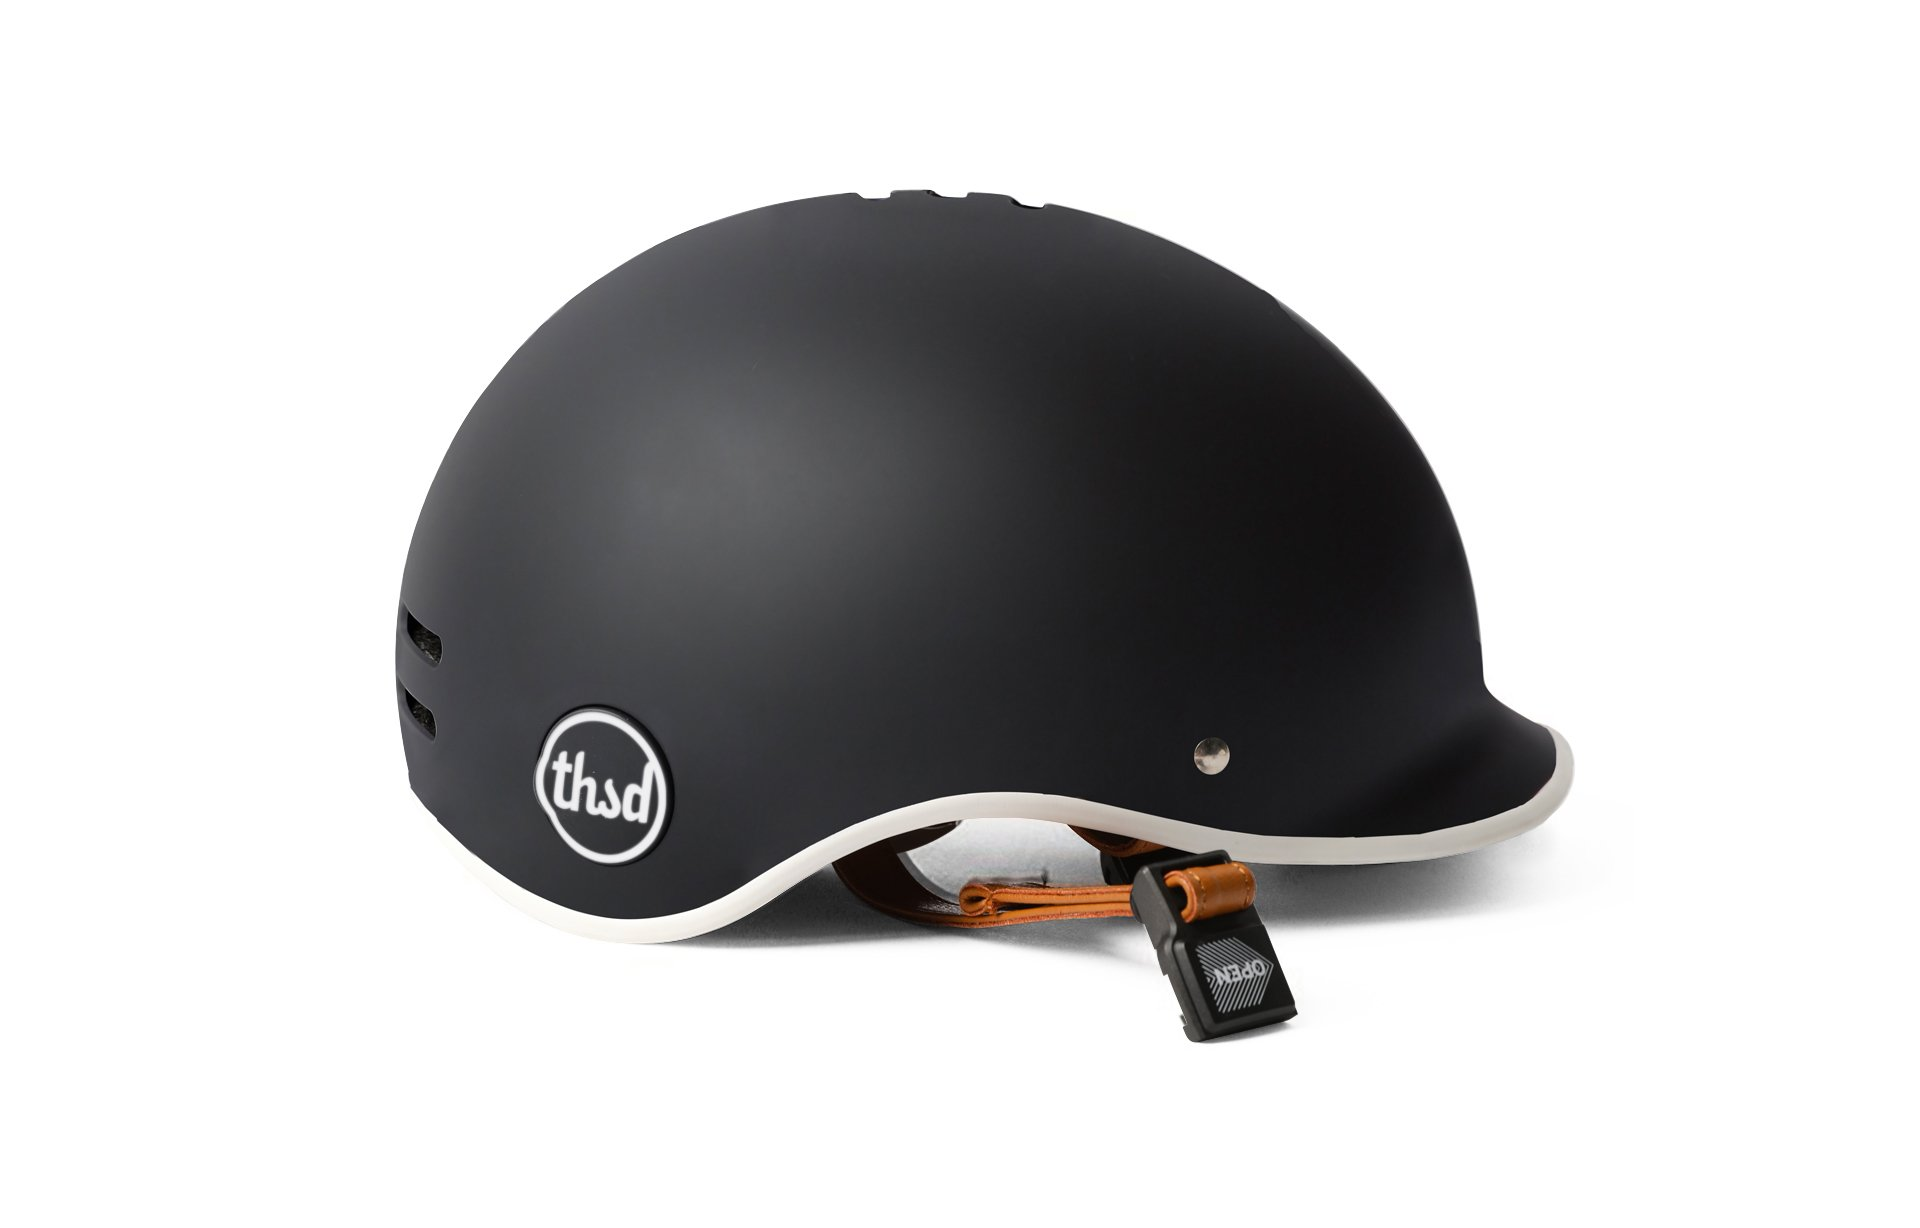 Thousand Adult Helmet Black Medium